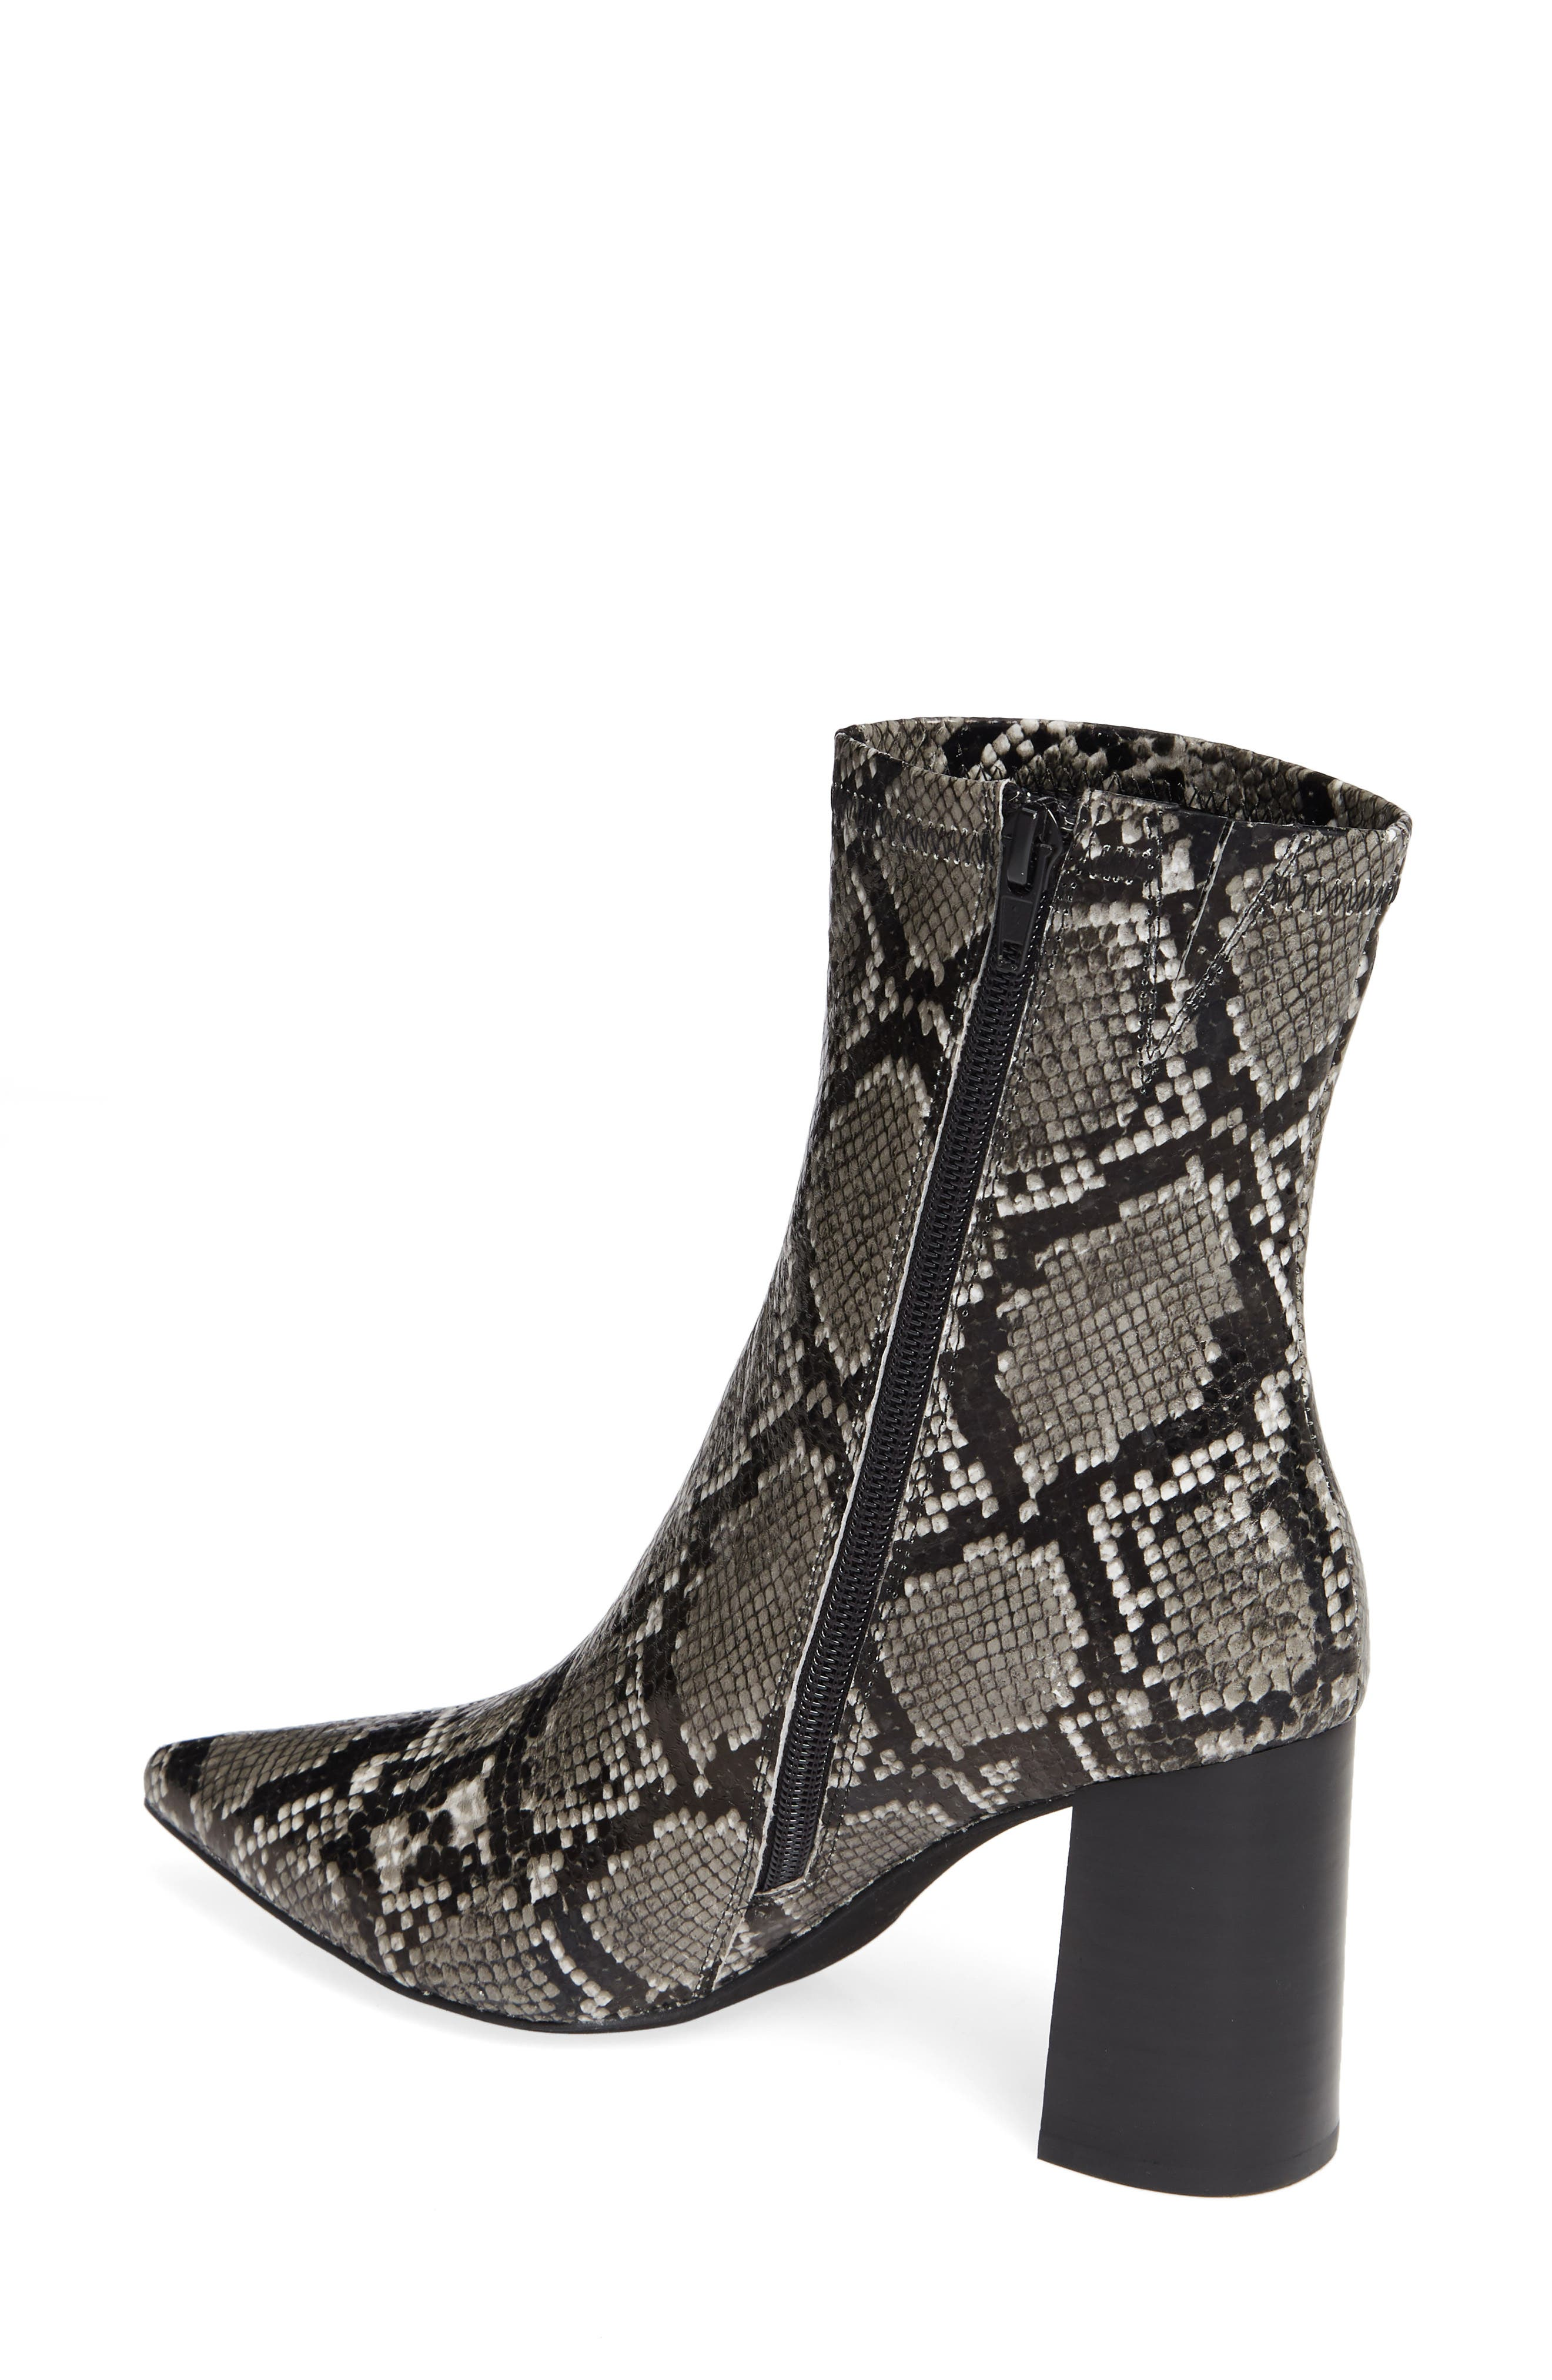 Coma 3 Block Heel Bootie,                             Alternate thumbnail 2, color,                             GREY/ BLACK SNAKE PRINT